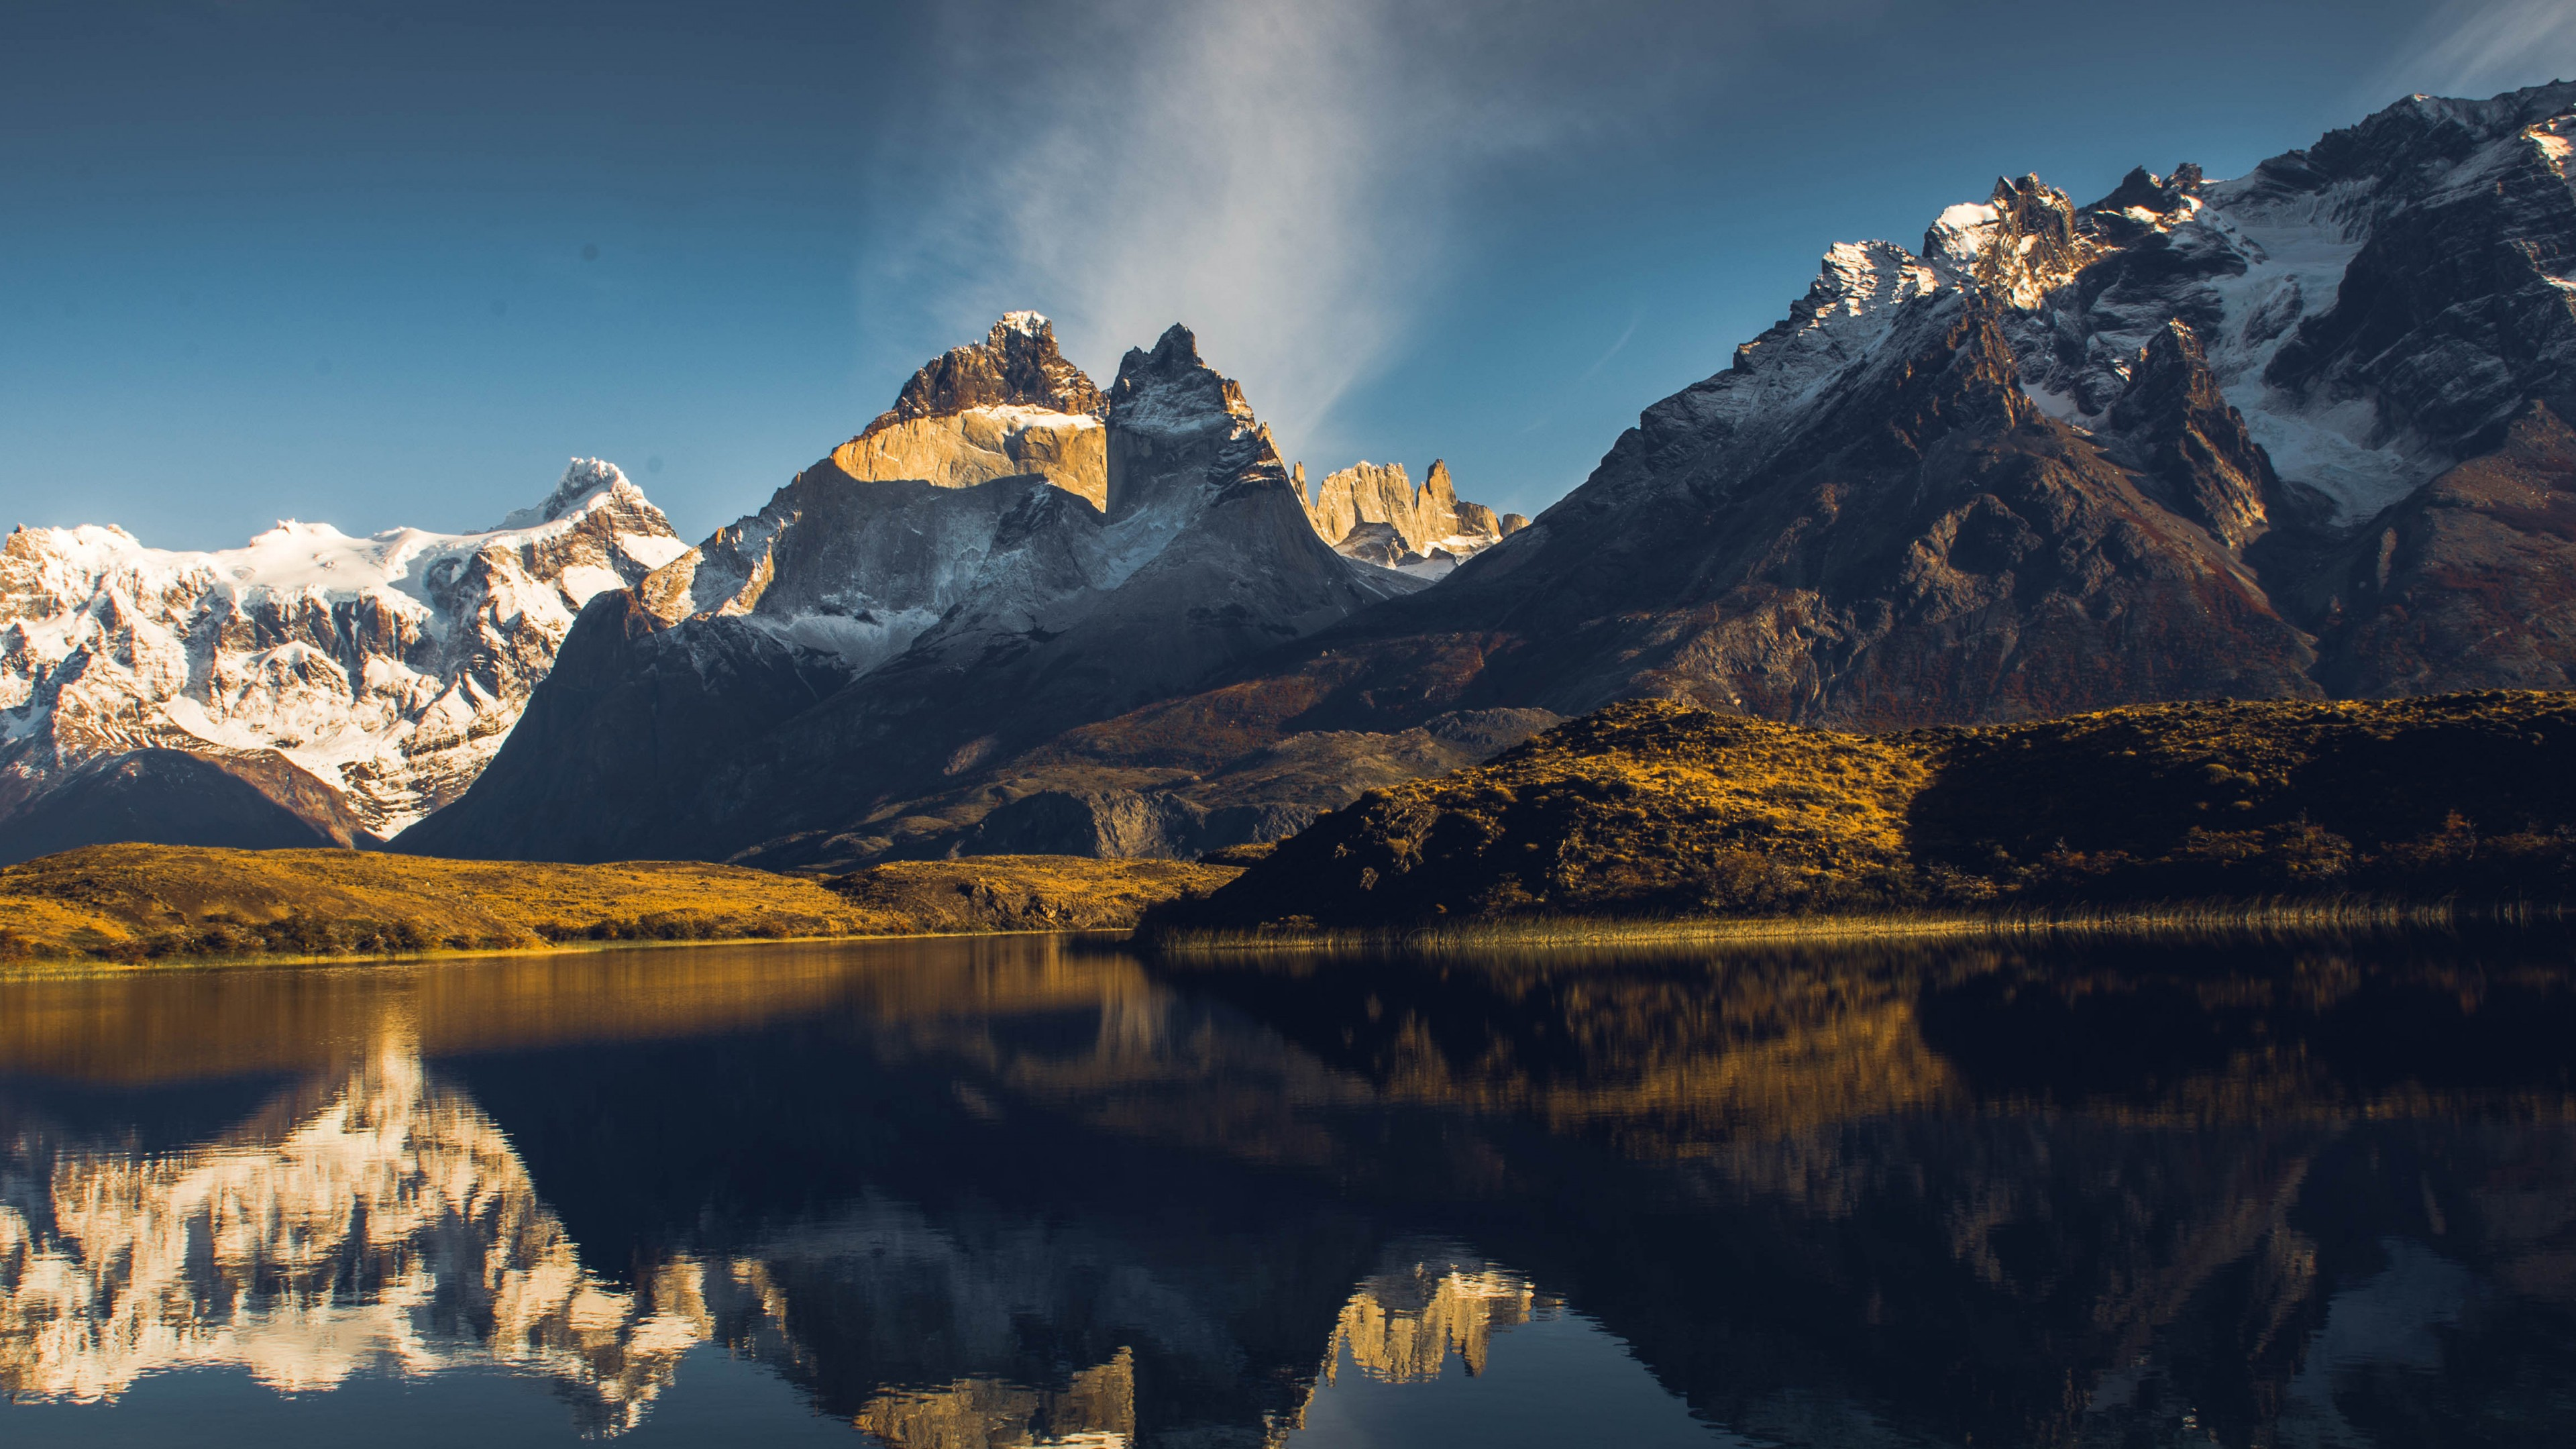 Wallpaper Lake Gray Torres del Paine Chile mountains